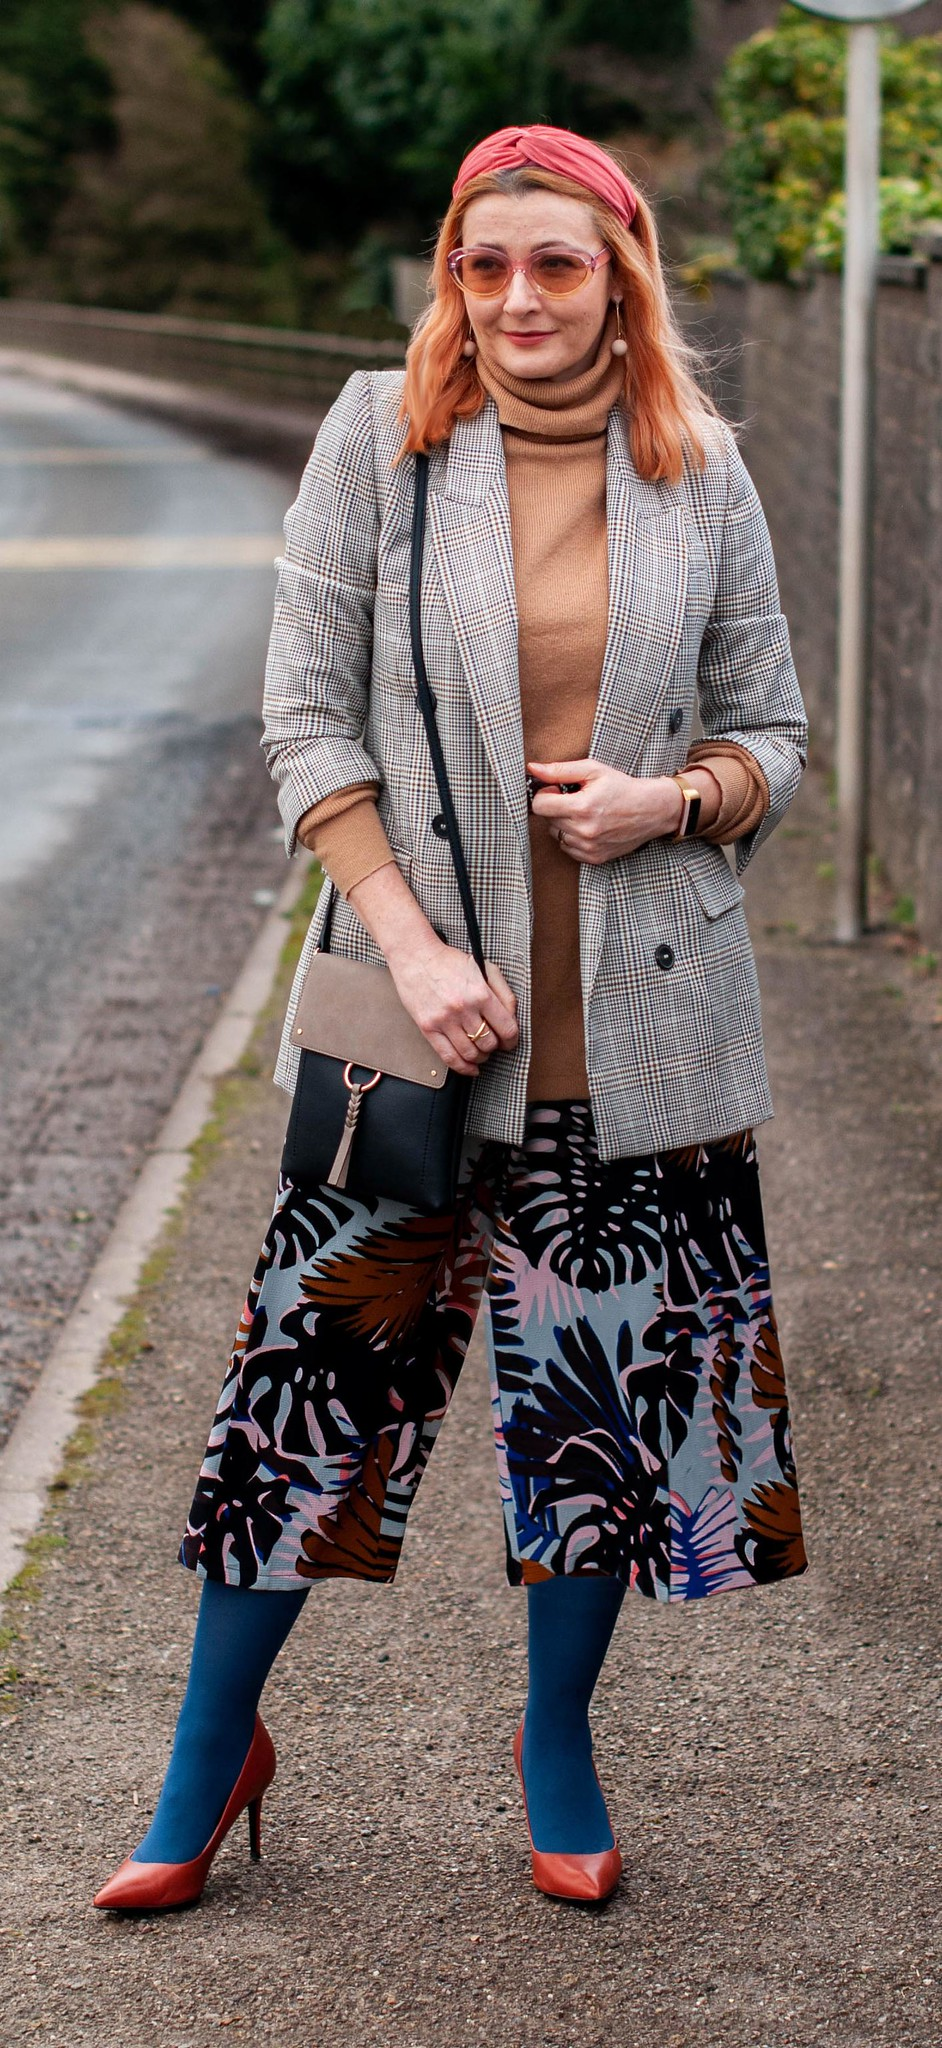 How to Mix Summer and Winter Prints: Palm print cropped trousers, Prince of Wales check blazer, heels and longline roll neck sweater | Not Dressed As Lamb, Style Over 40